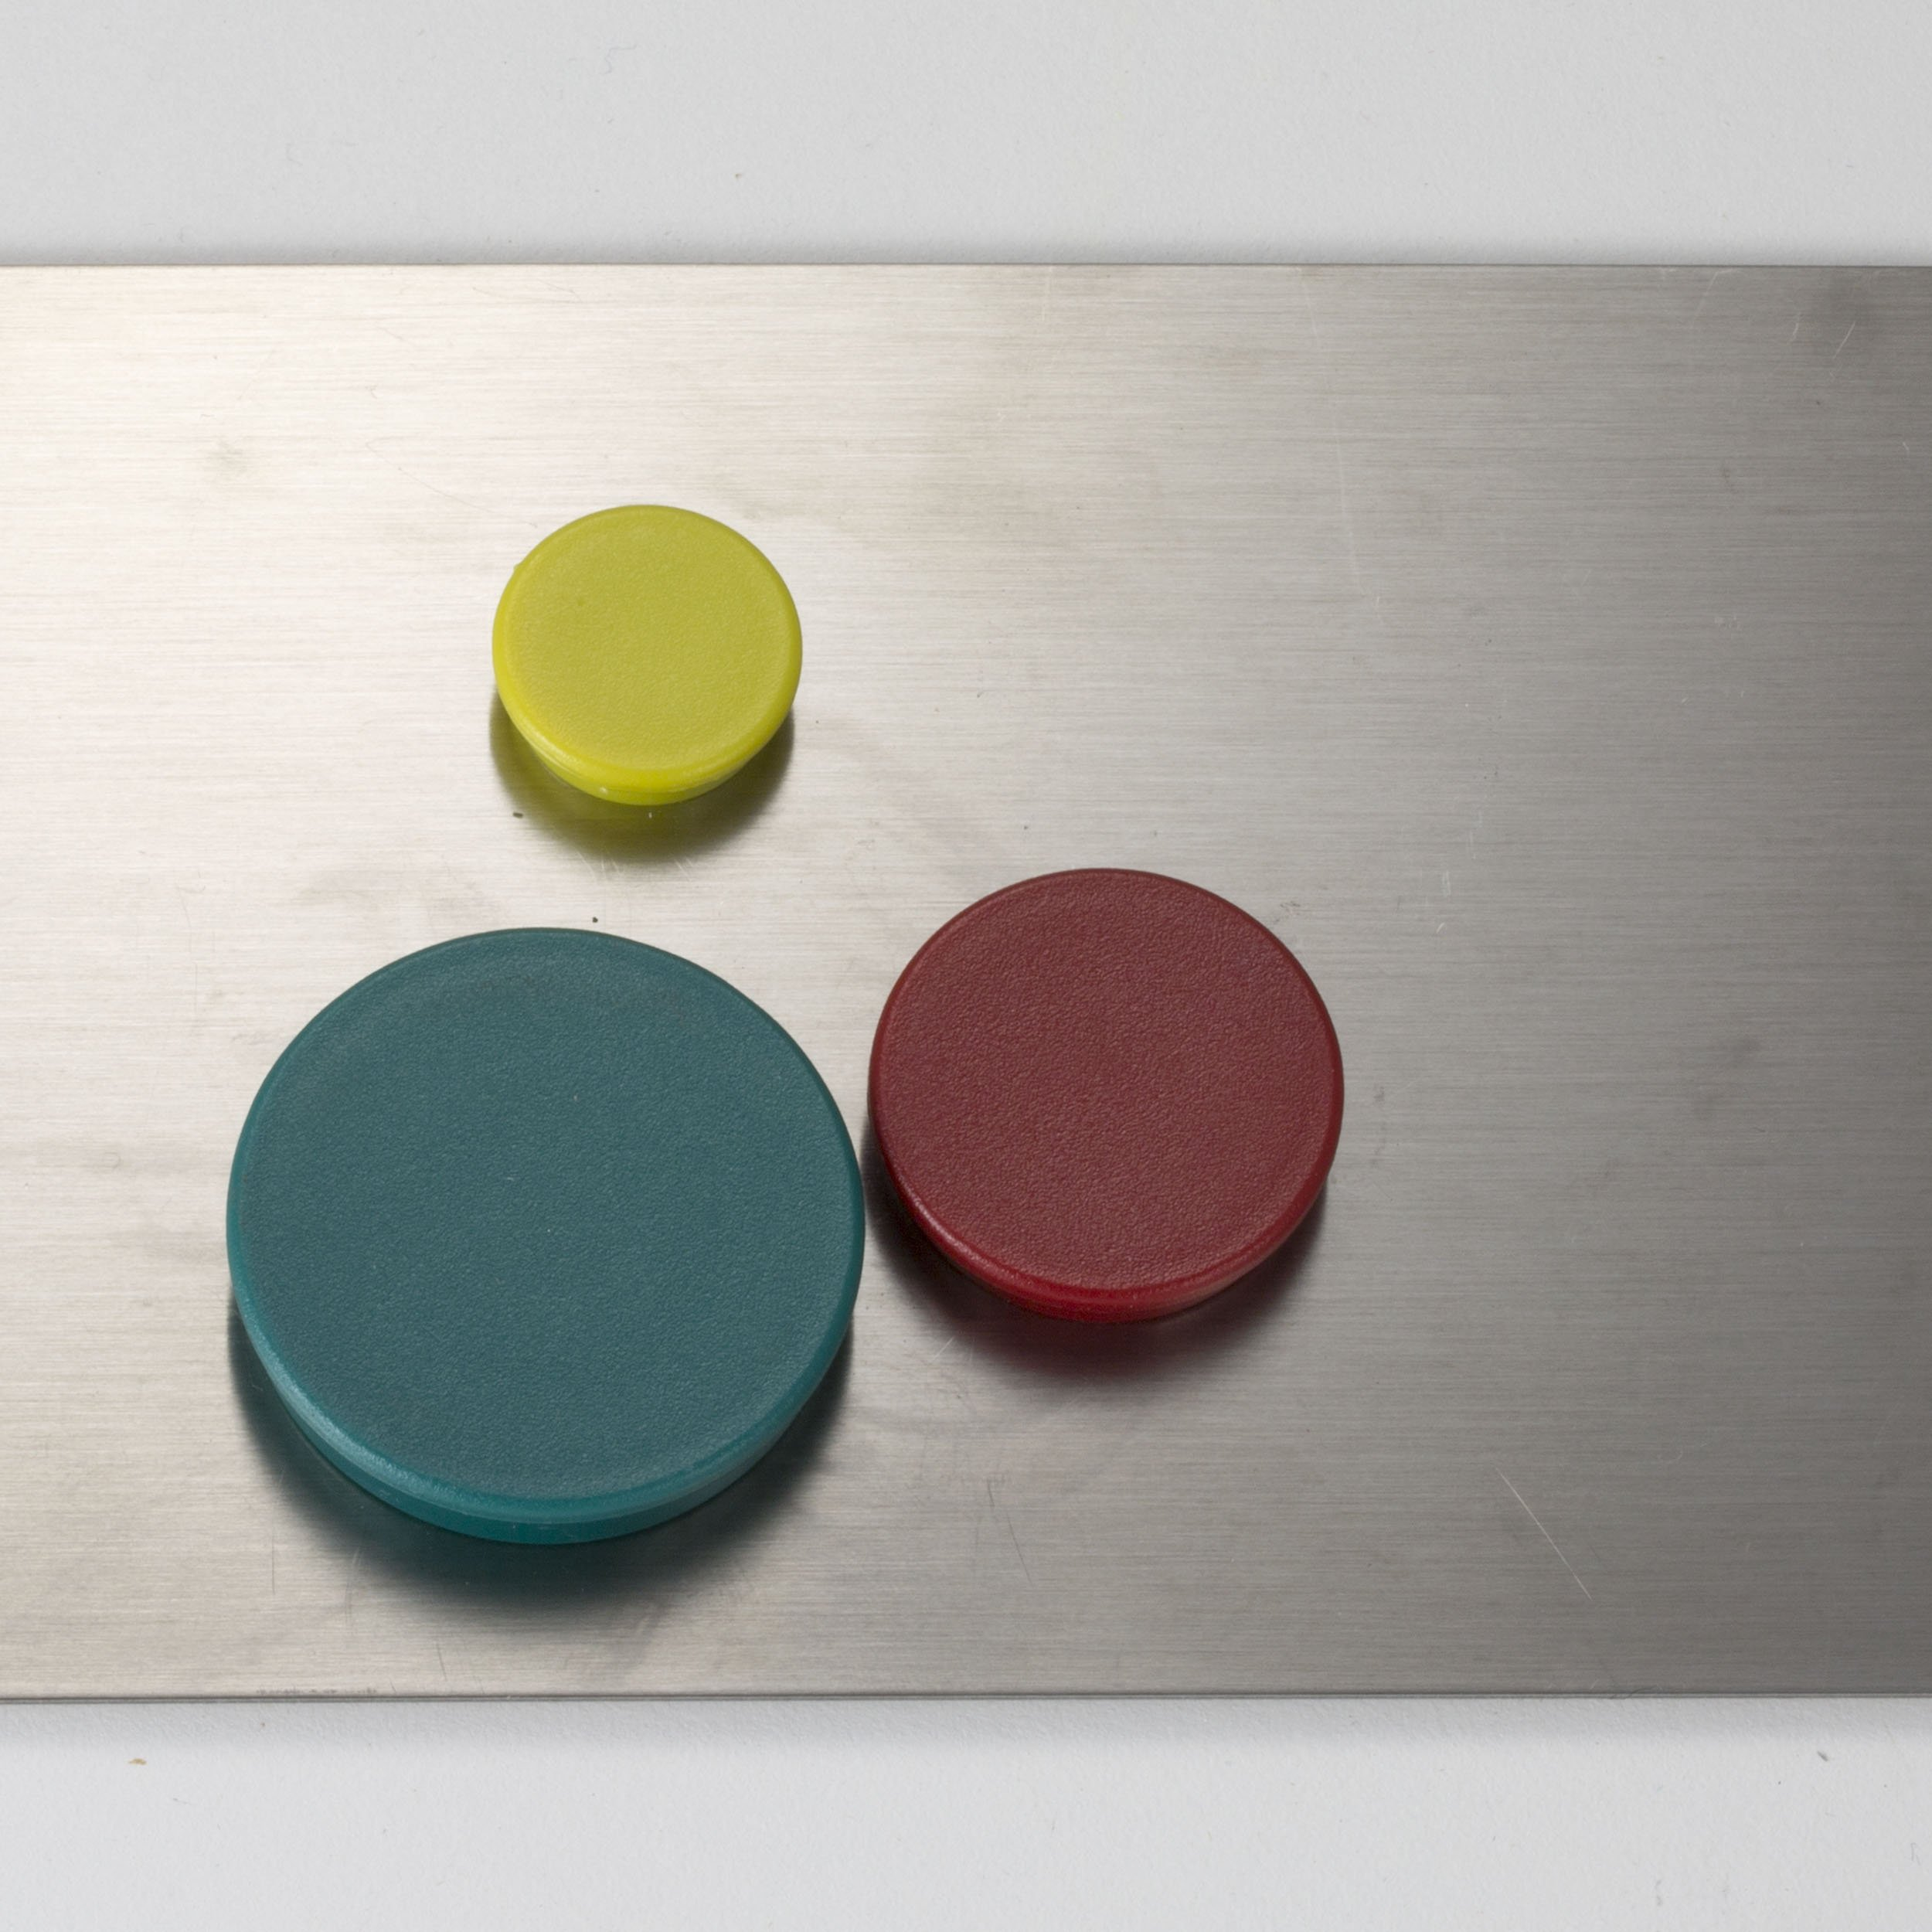 Officemate Assorted Heavy-Duty Magnets, Circles, Assorted Sizes & Colors, 30/Tub (92501) by Officemate (Image #4)